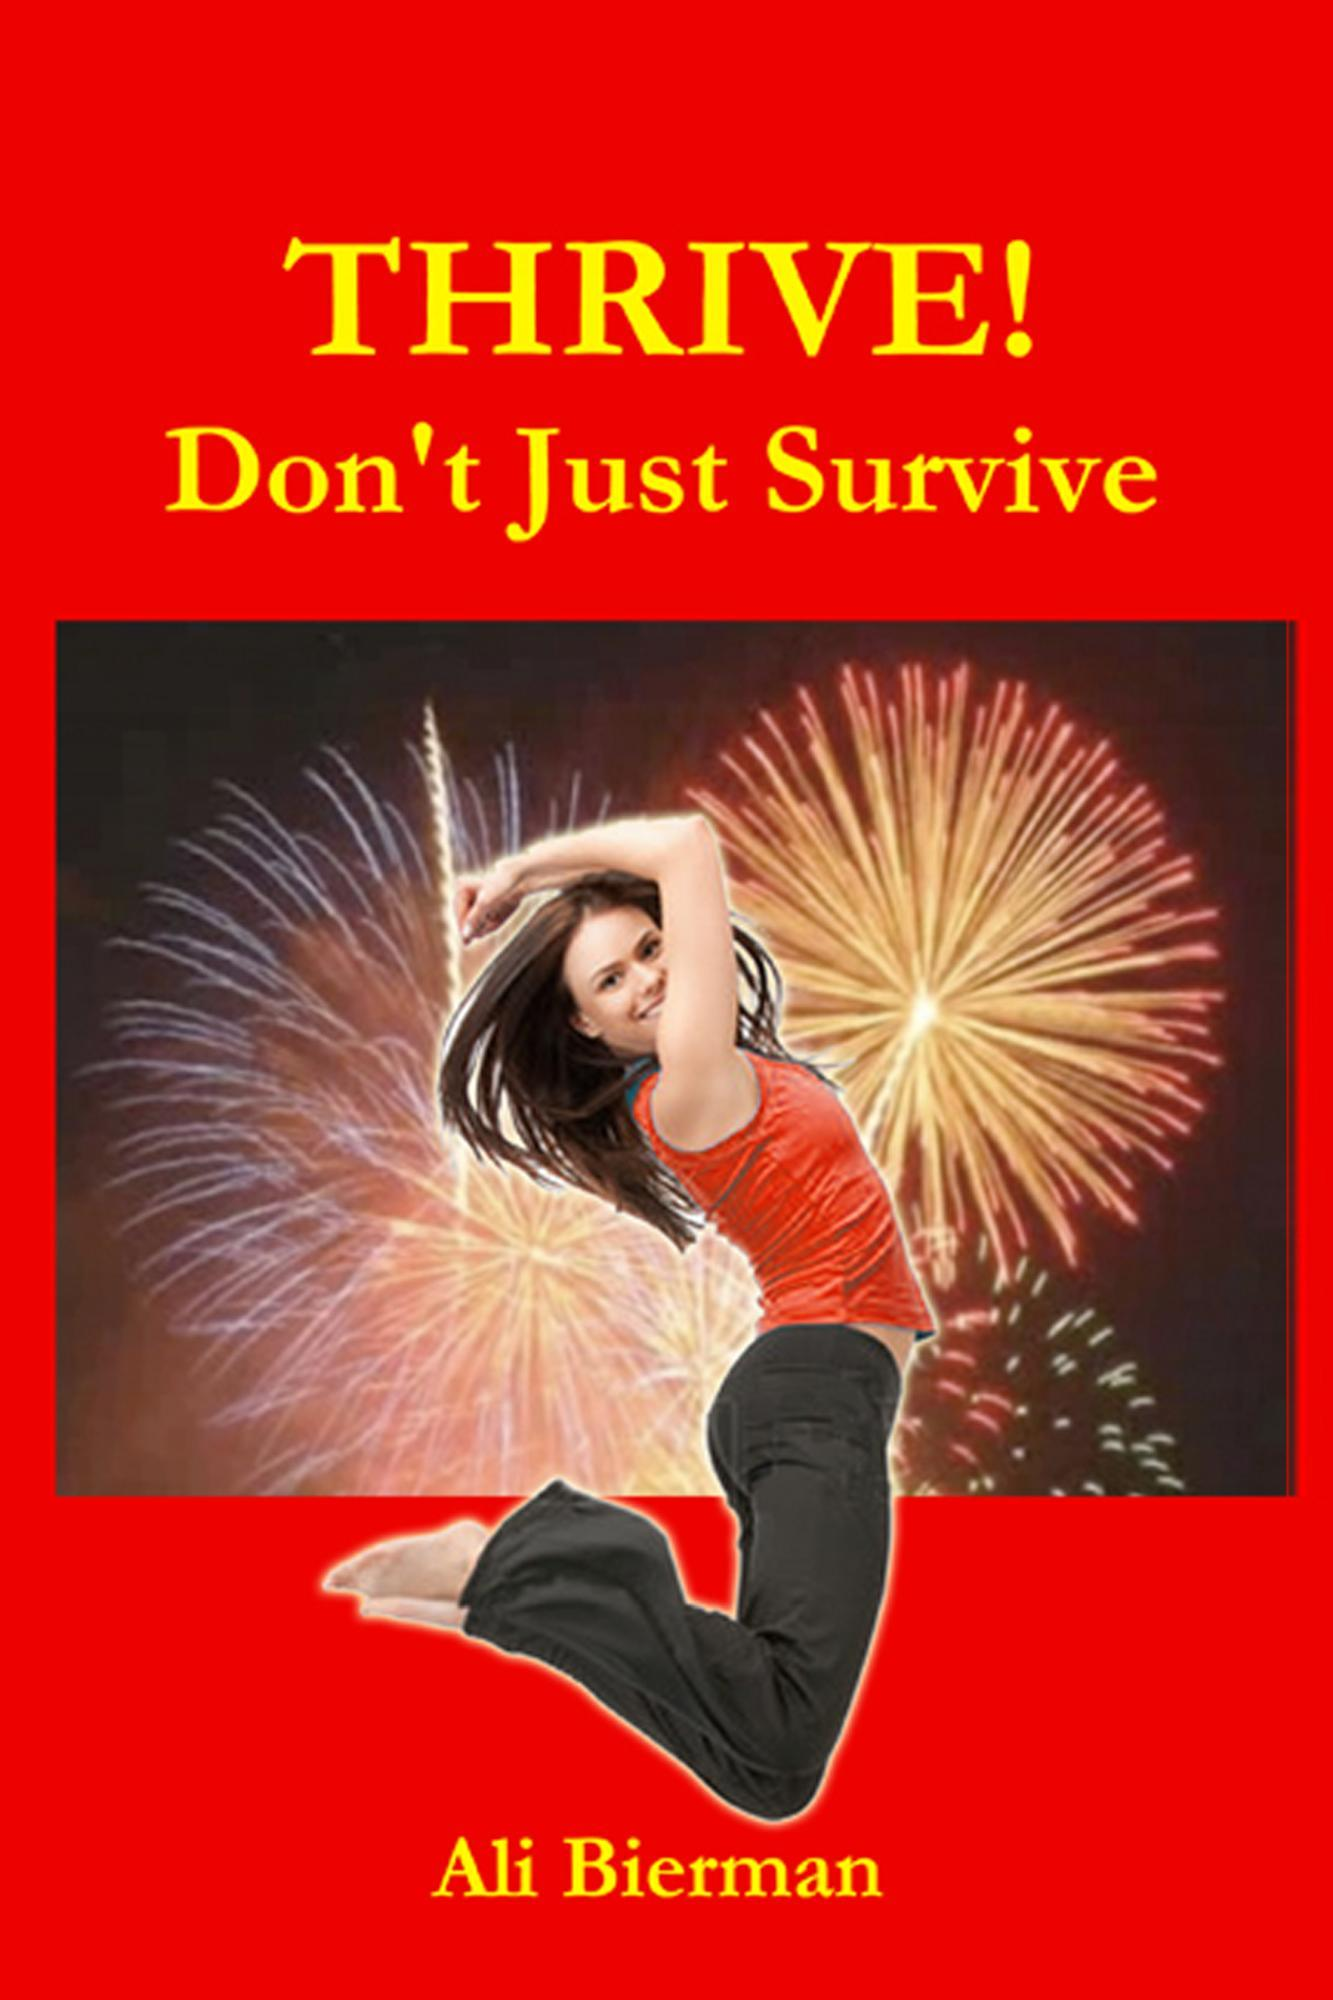 thrive don't just survive book cover